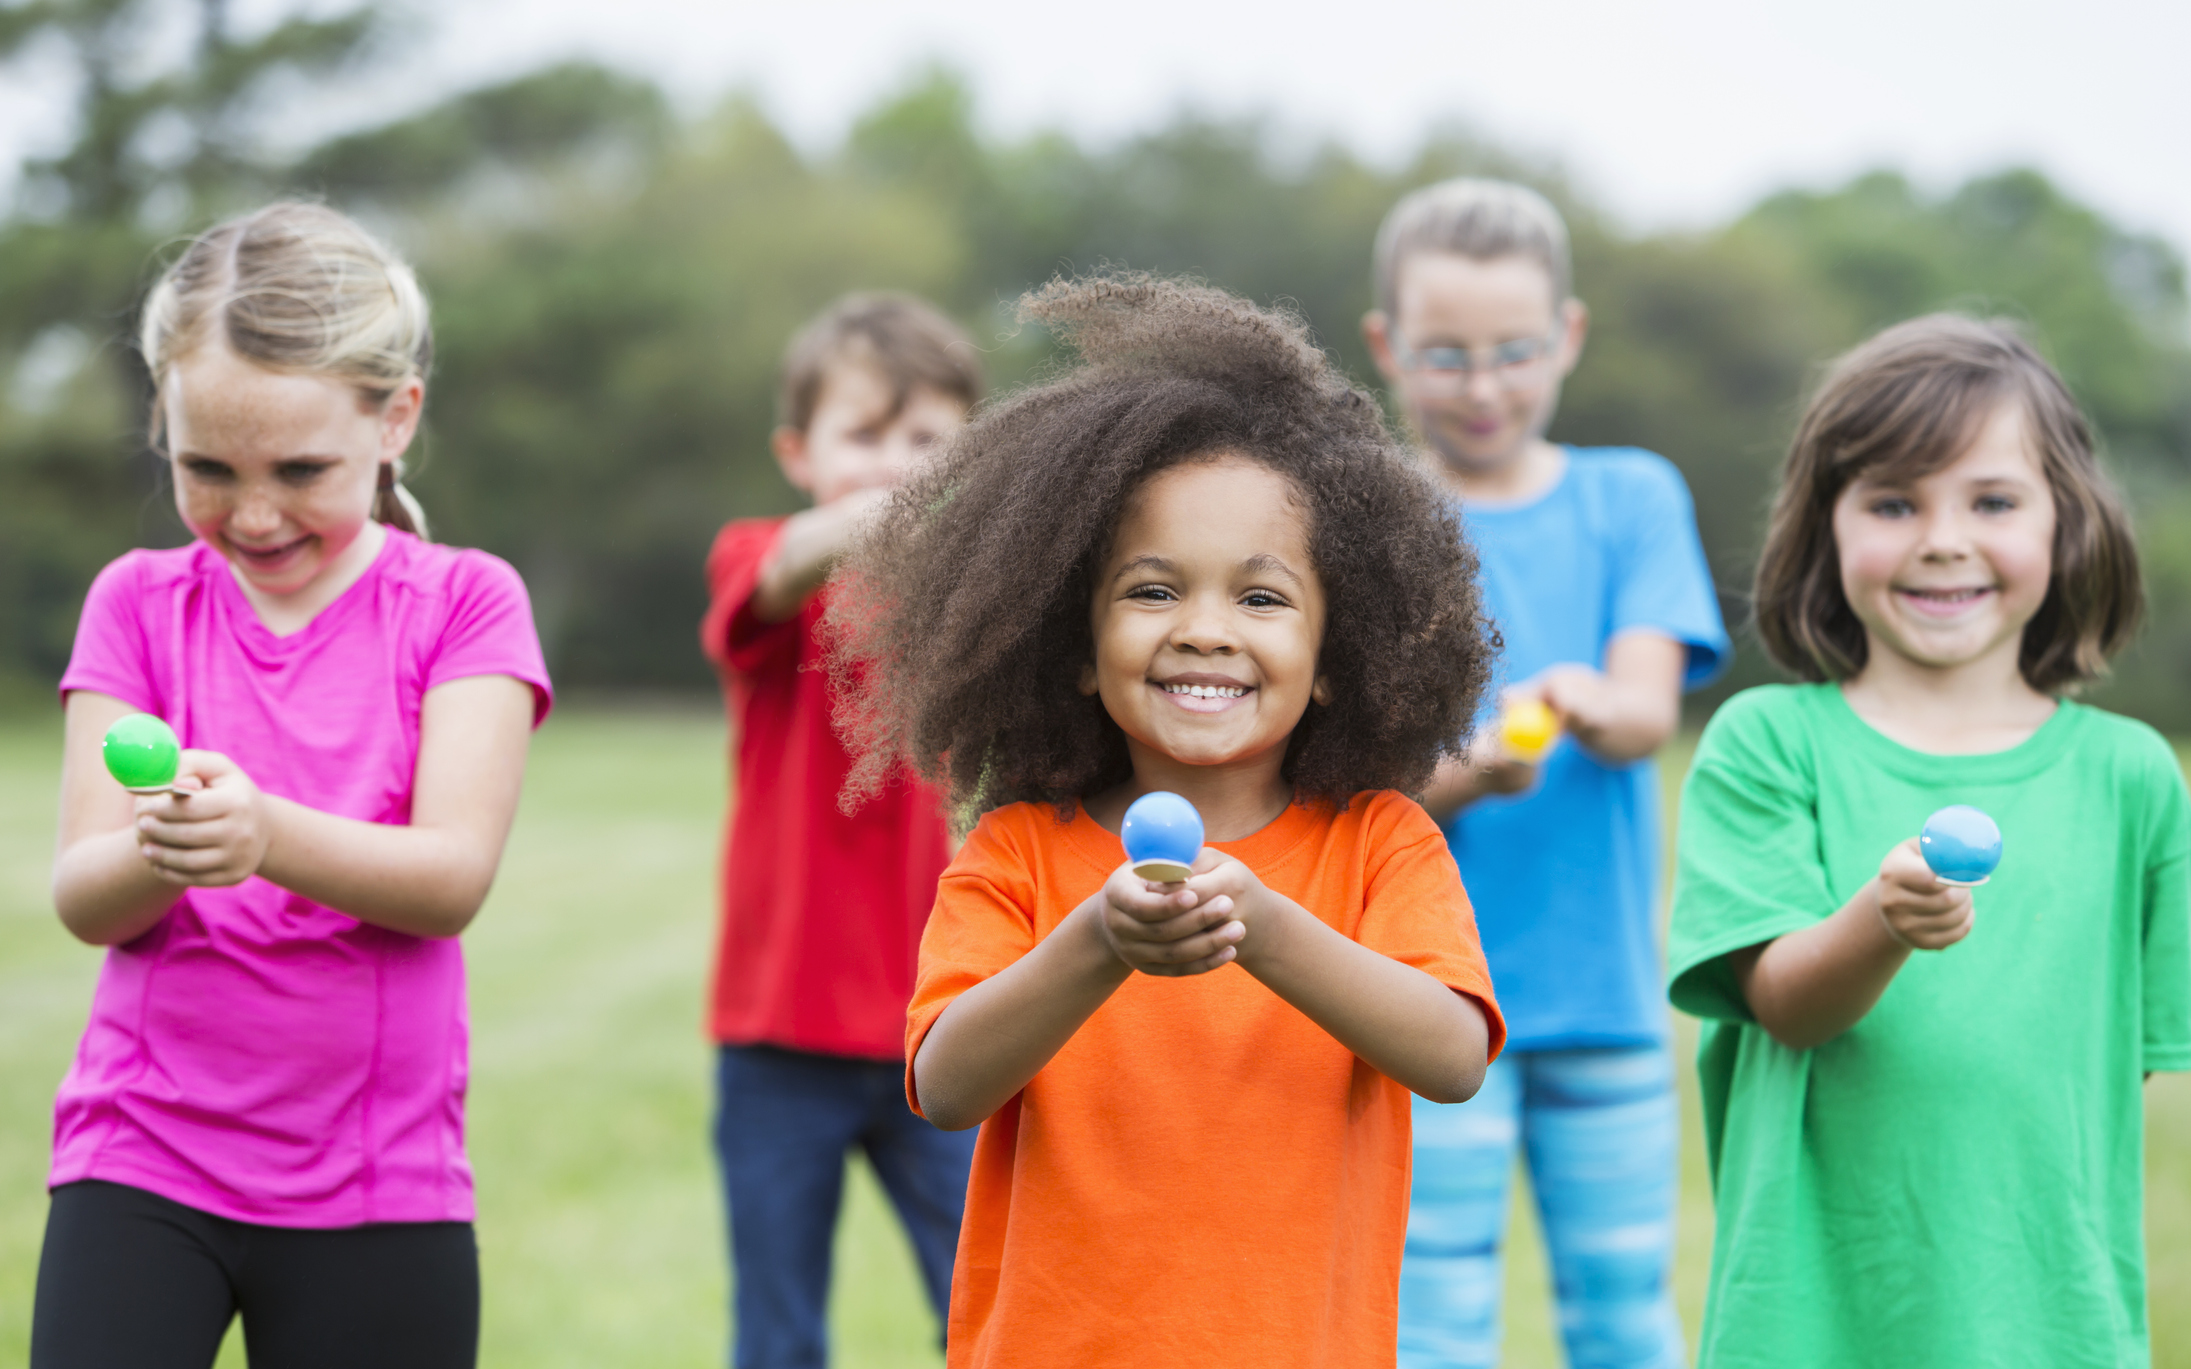 10 Fun Ways To Add Activity To Your Easter Active For Life